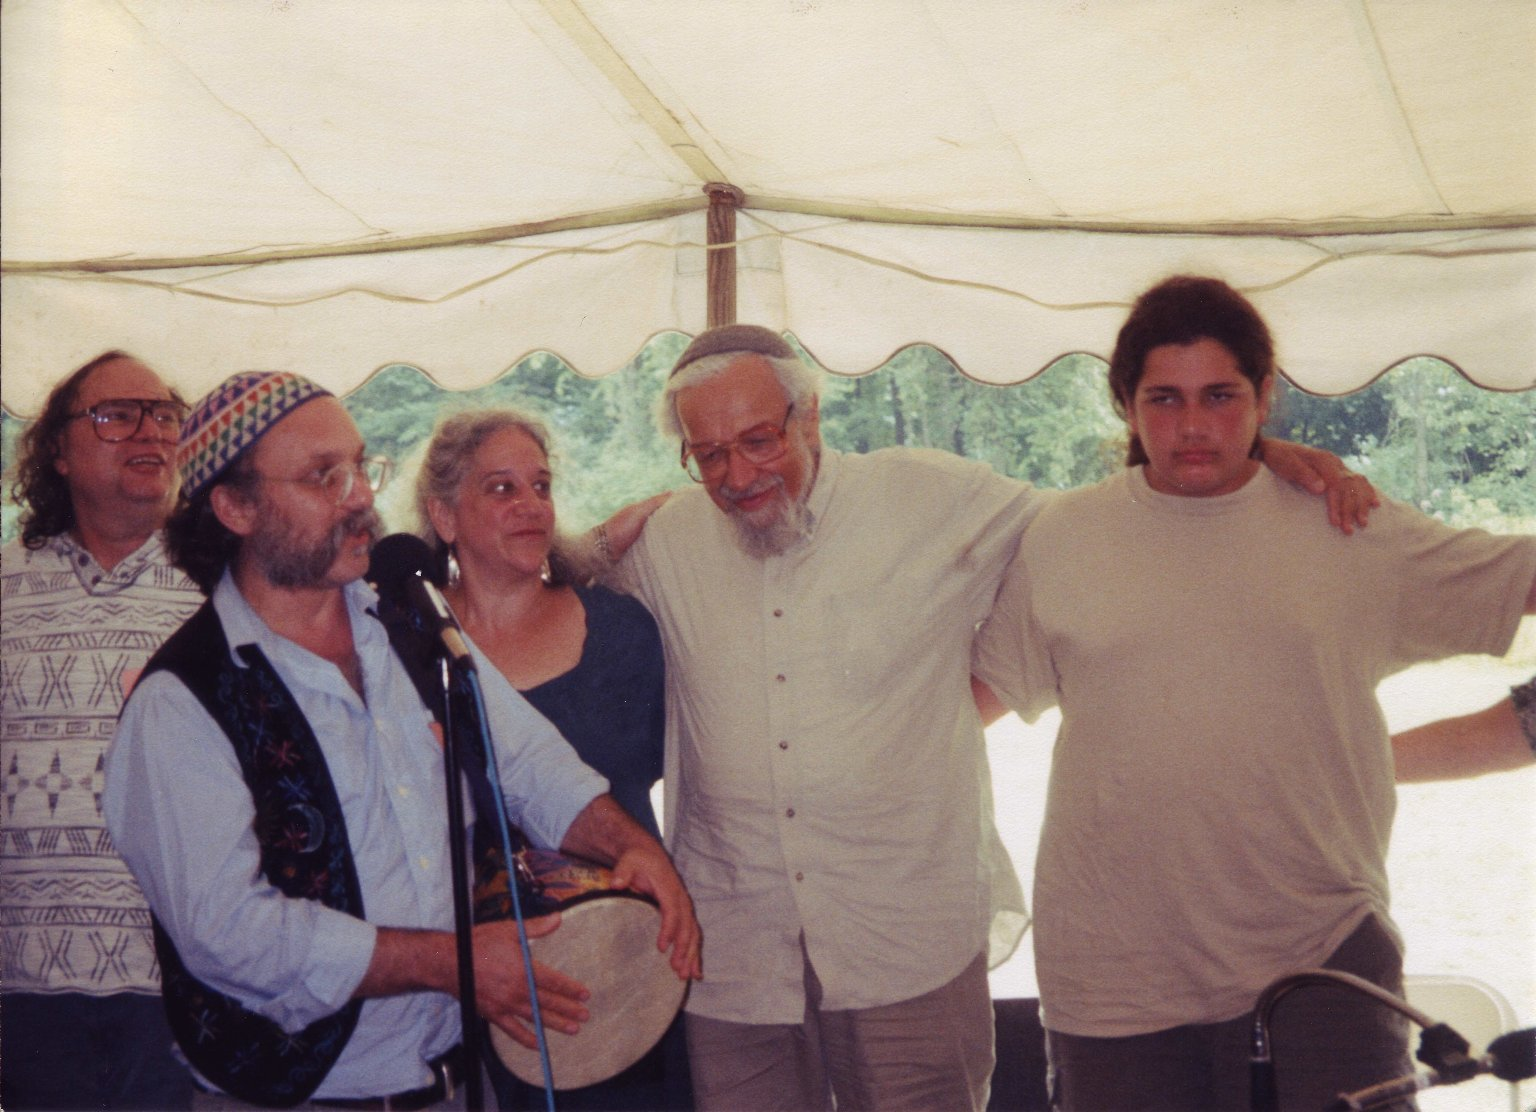 Cantor Robert Michael Esformes performing for Rabbi Zalman Schachter-Shalomi at his 75th birthday celebration at Elat Chayyim, ca. 1999.